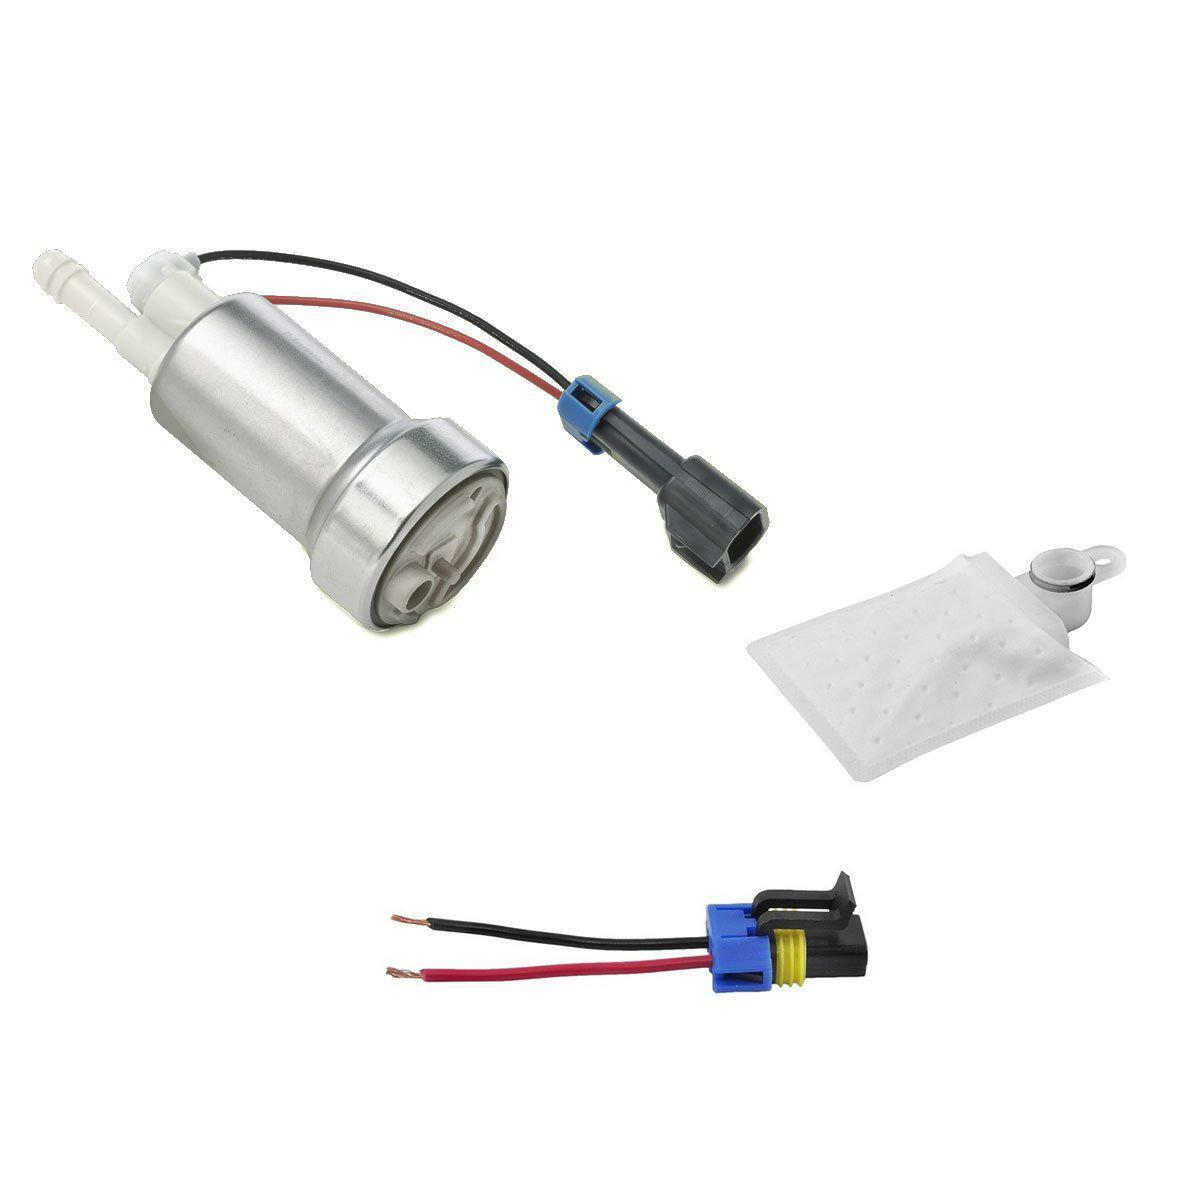 Walbro HP HELLCAT IN-TANK FUEL PUMP 470LPH W/FITTING KIT (E85 COMPATIBLE) - 45 DEGREE STRAINER FAF Automotive